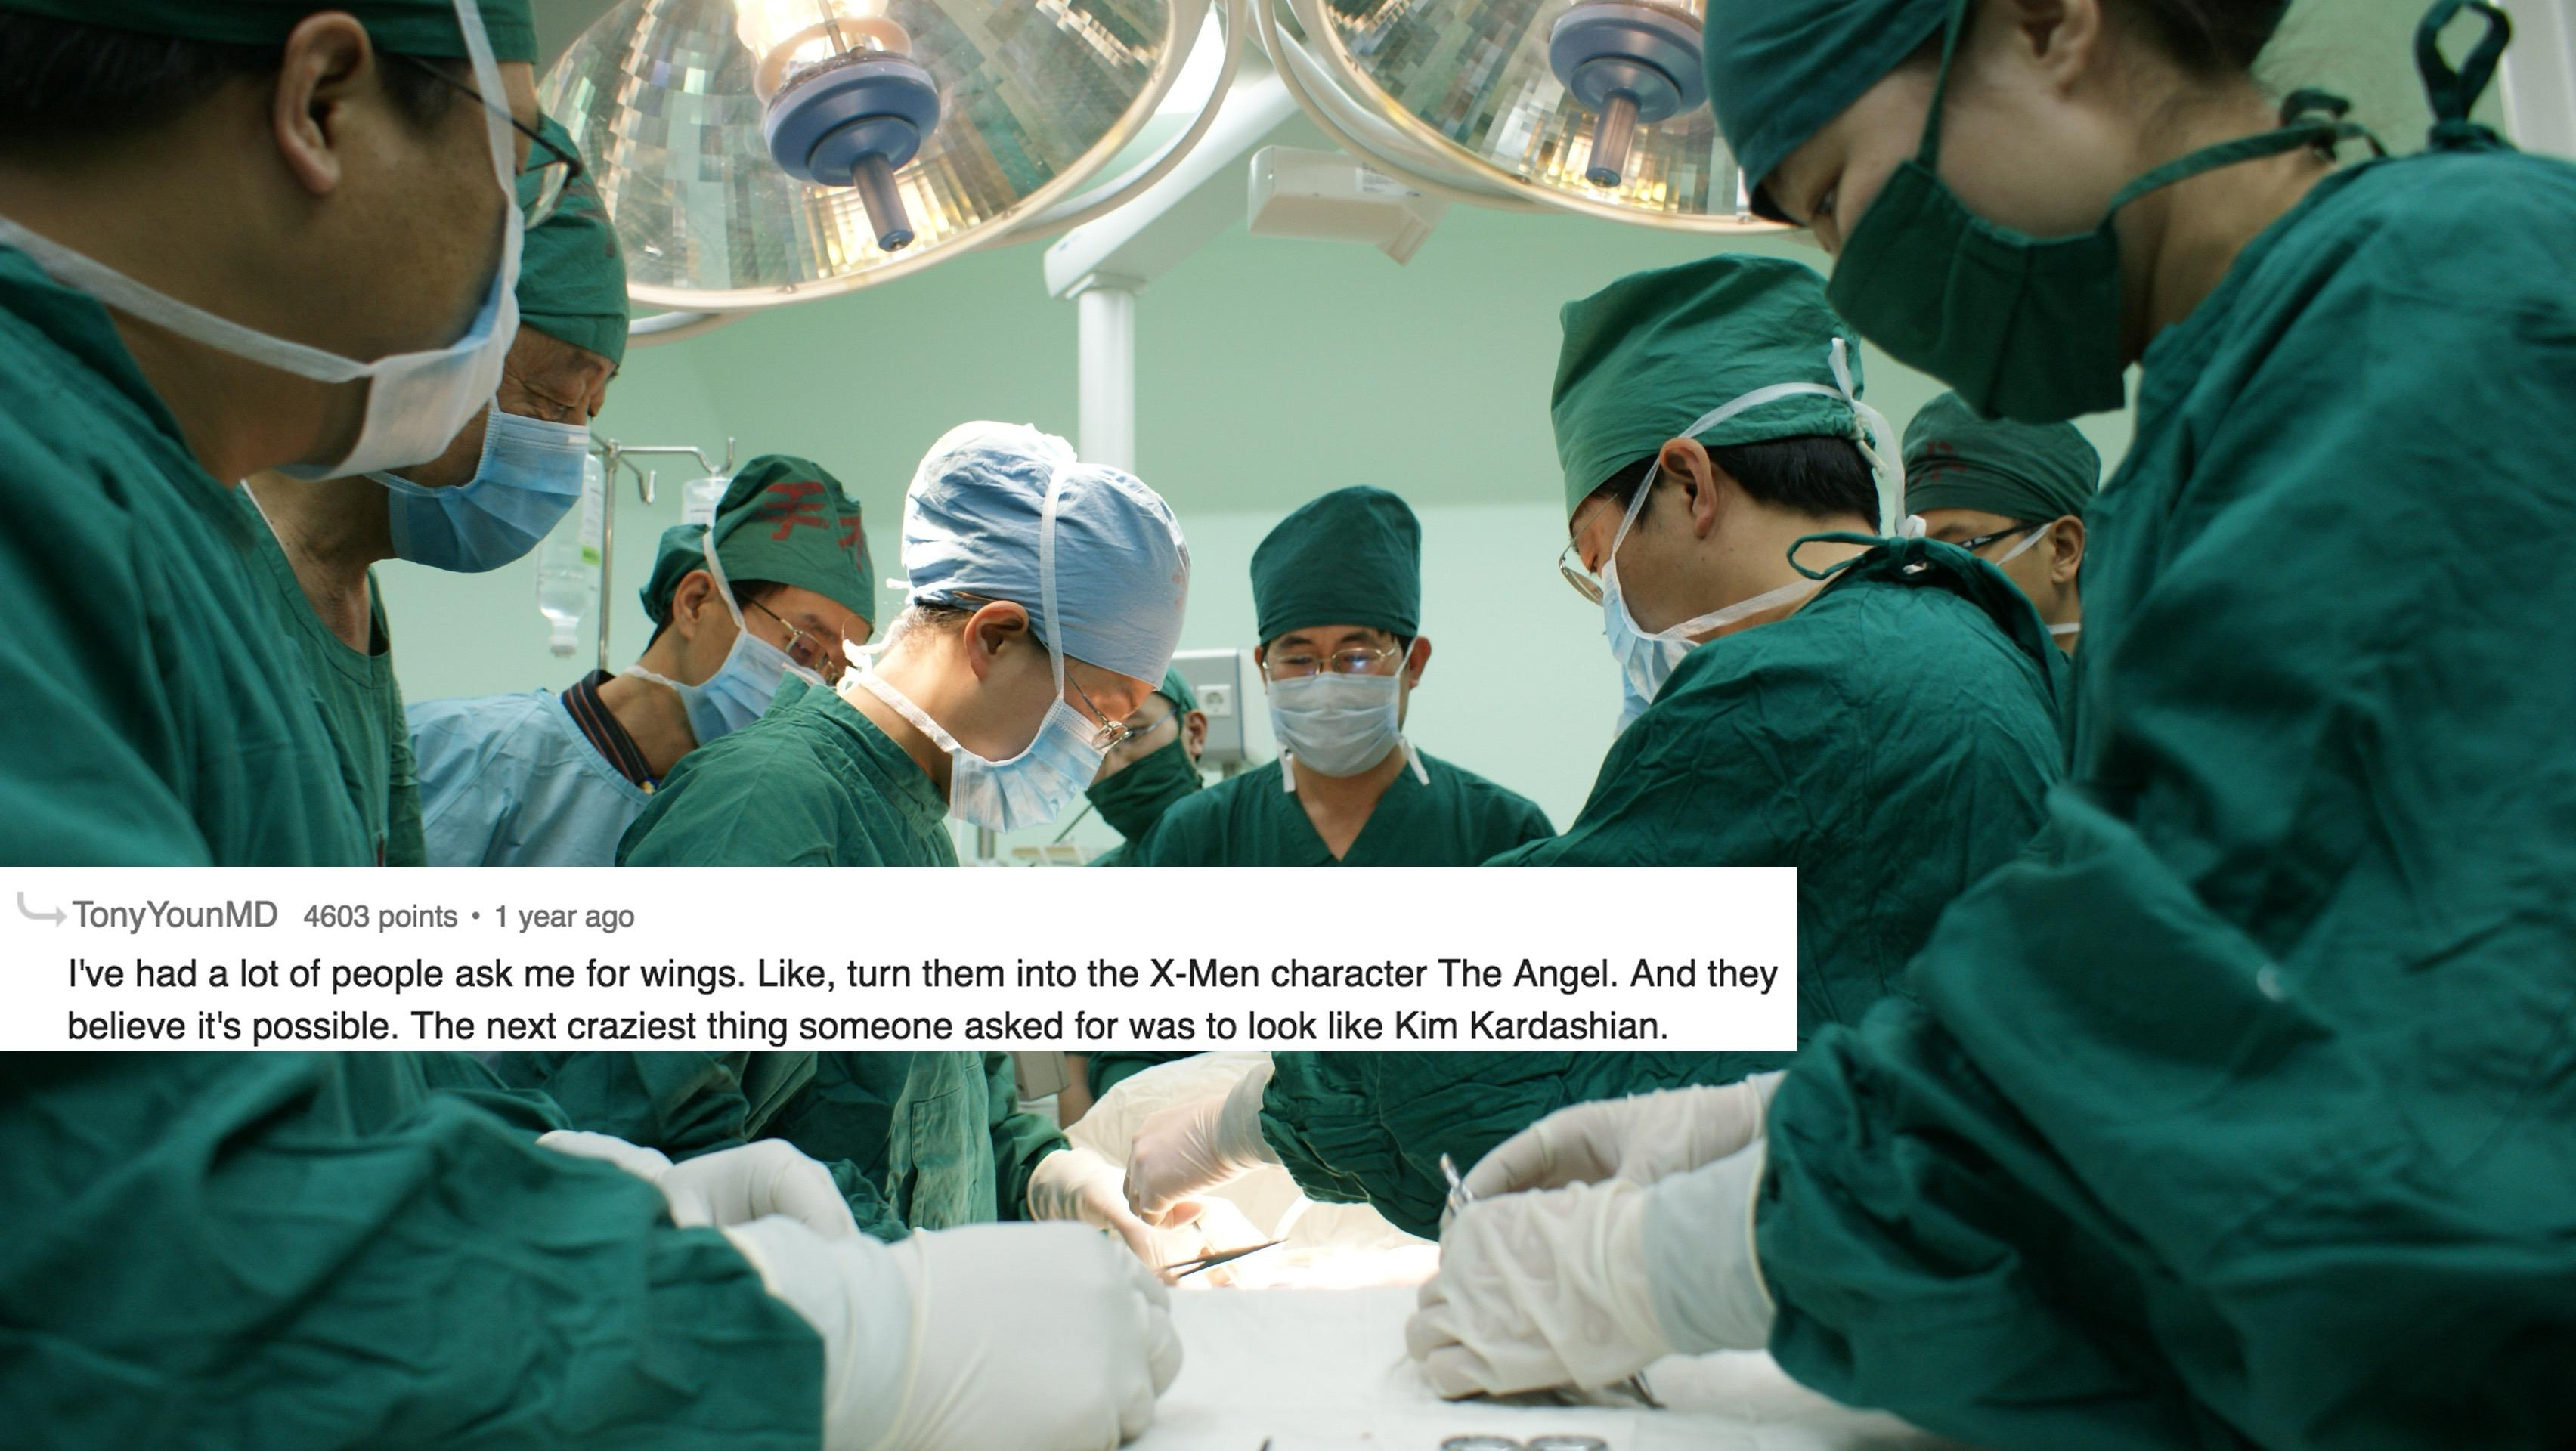 Students_assisting_surgerycopy-1509634807675-1509634811576.jpg